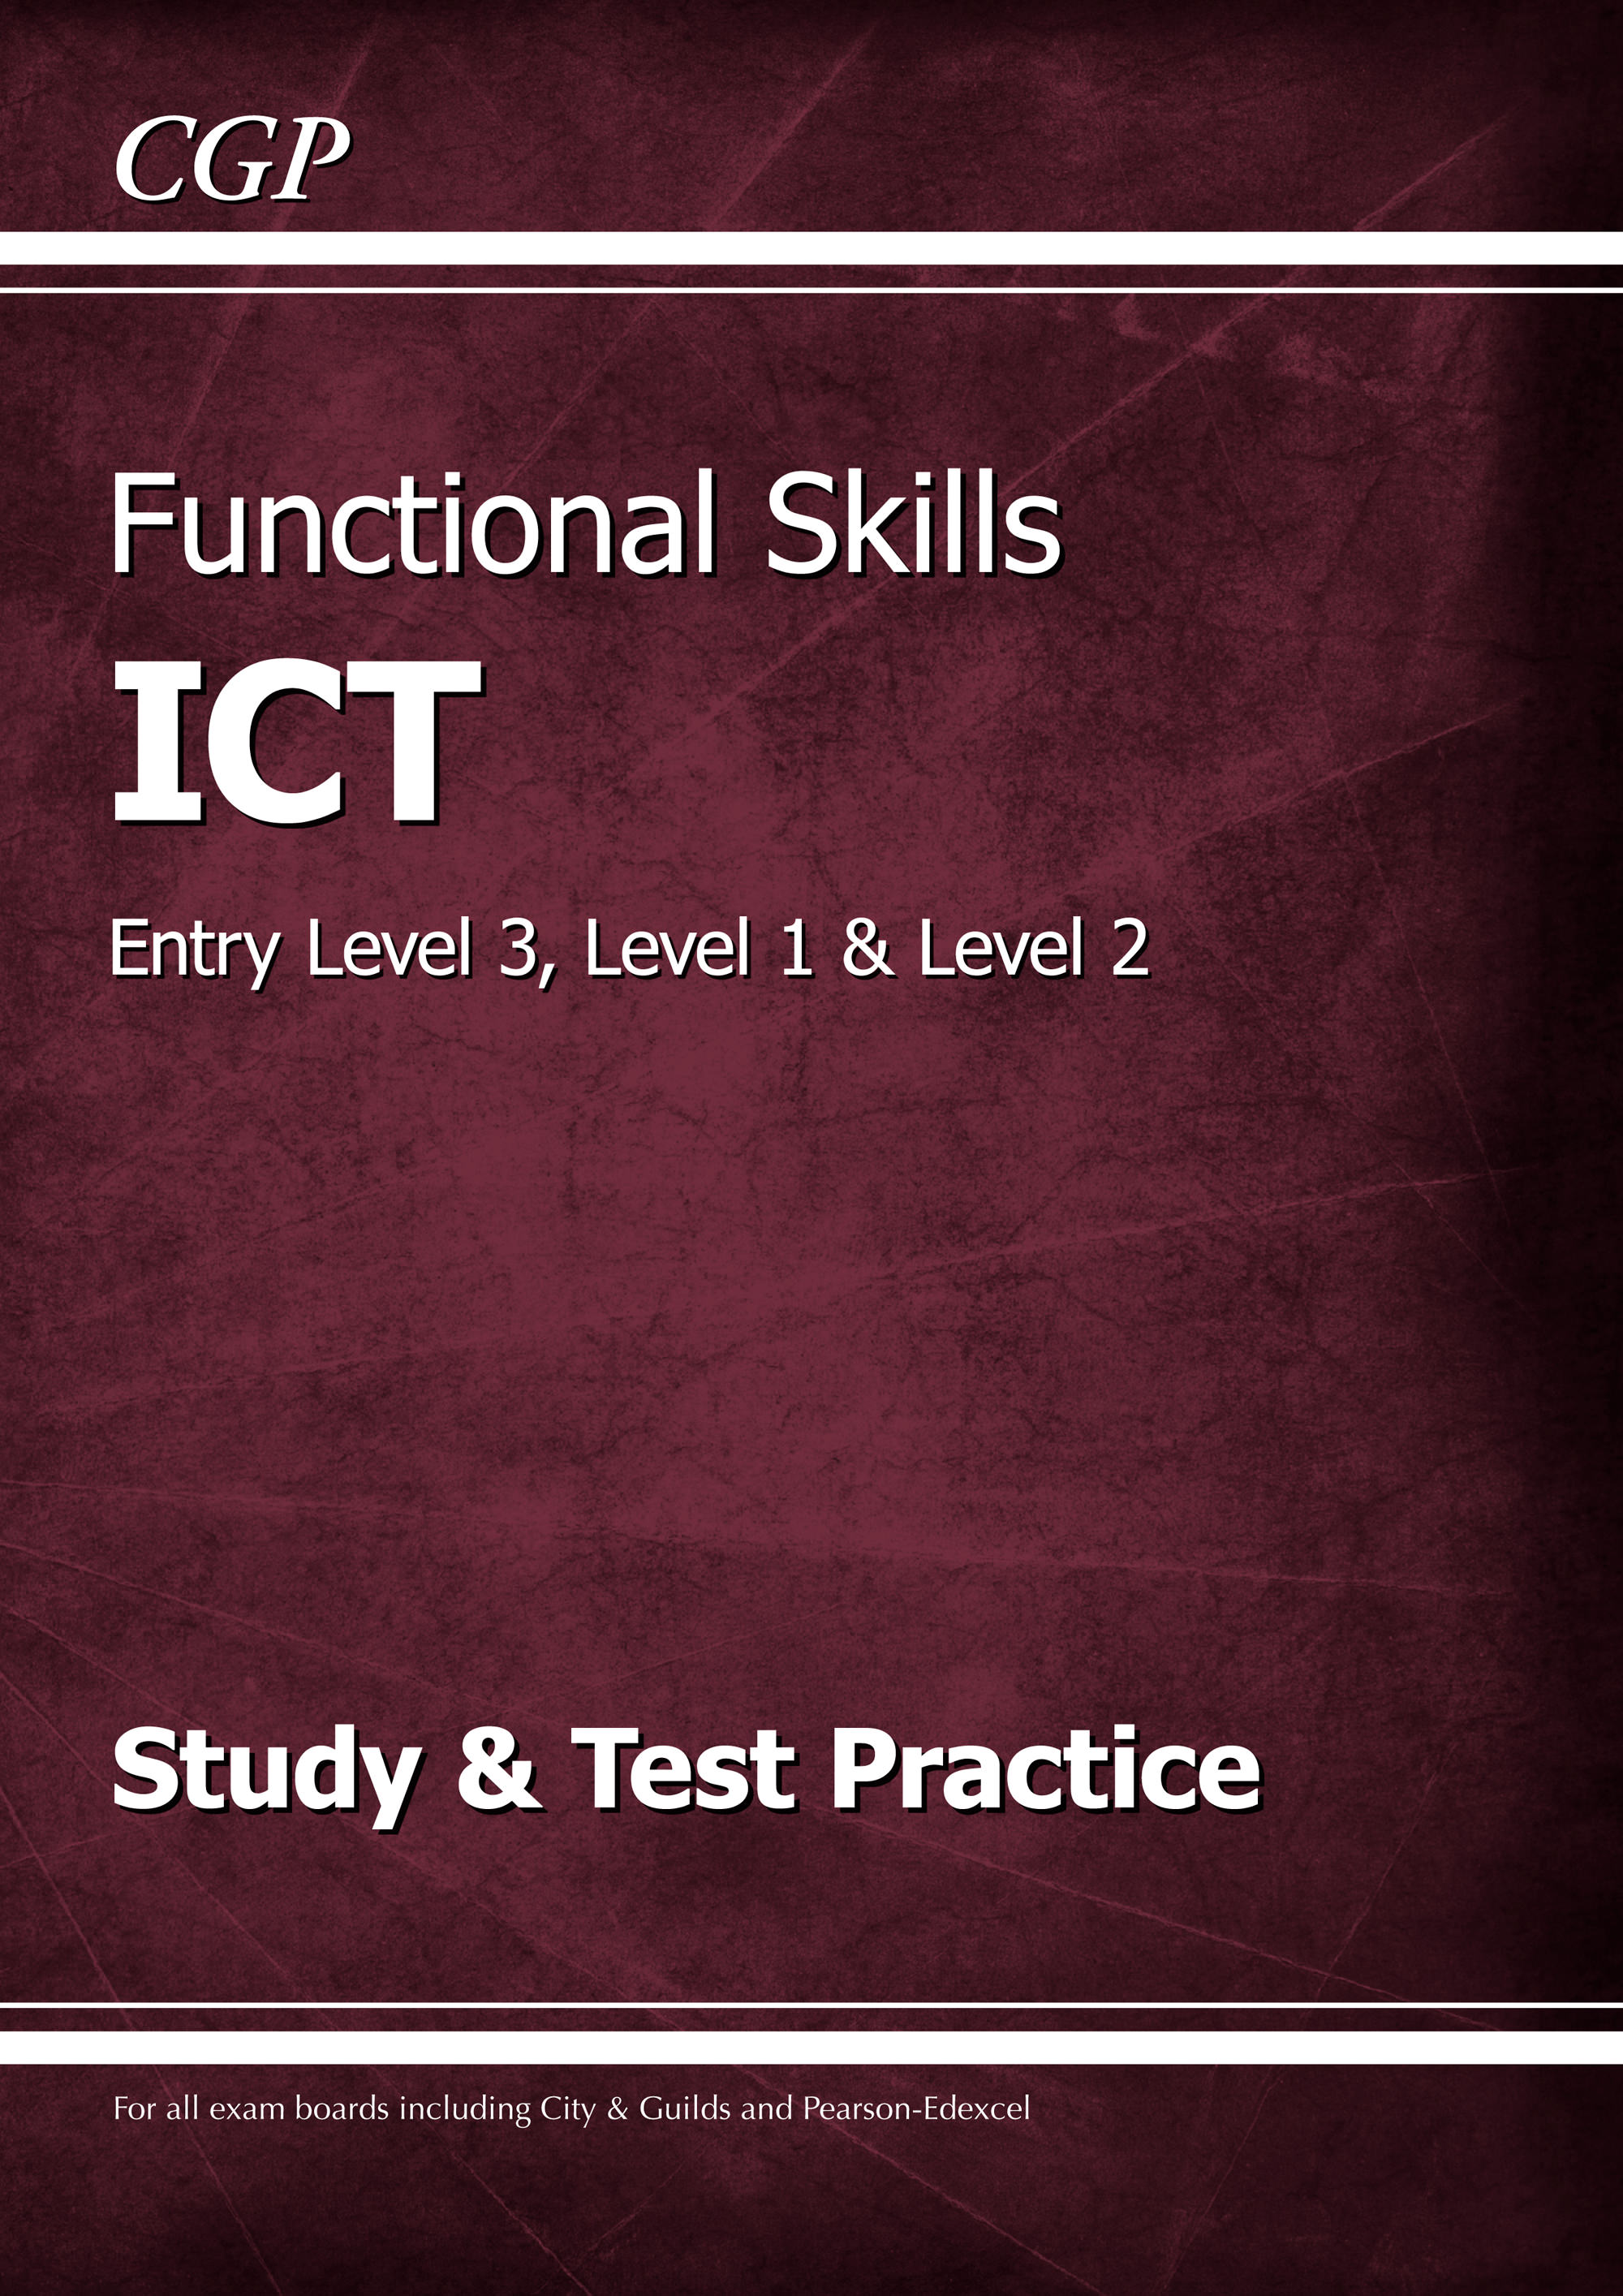 ISRA2 - Functional Skills ICT - Entry Level 3, Level 1 and Level 2 - Study & Test Practice